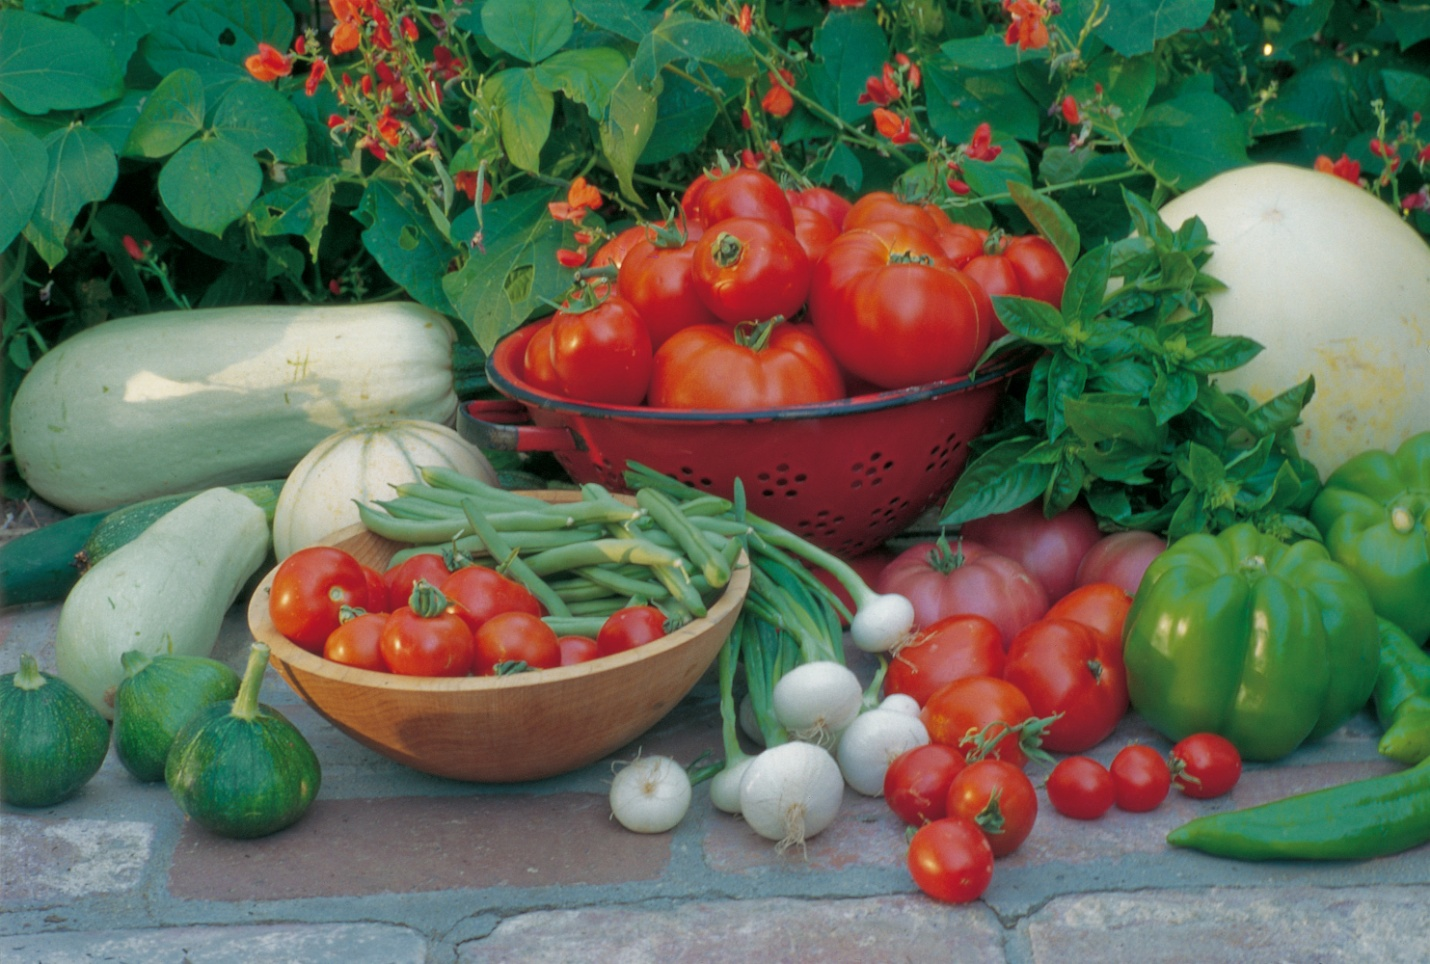 When grown using organic techniques and drip irrigation, home-grown tomatoes, peppers, squash, basil, and onions not only taste better, compared to large-scale agriculture, they use less than half the water. (Photo courtesy of Rosalind Creasy)